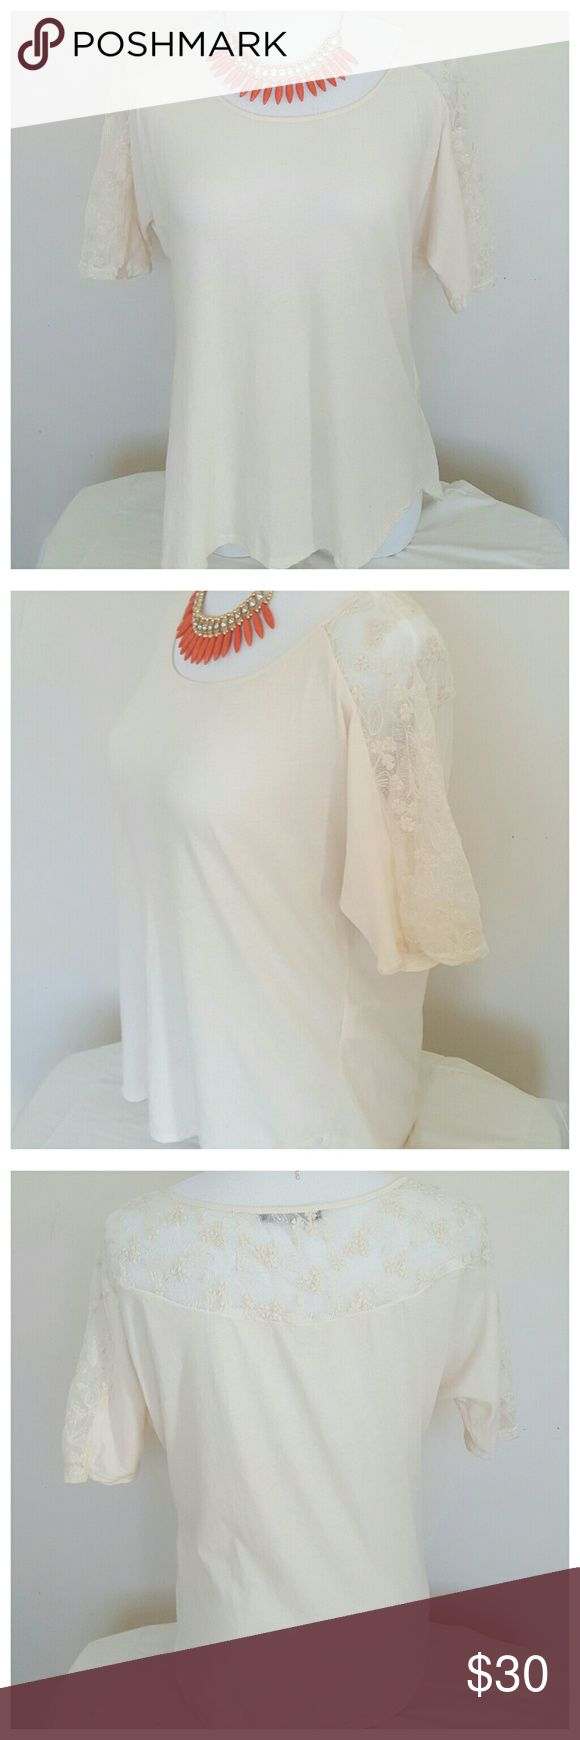 """Velvet Cream Short Sleeve Top with Lace Cream colored, semi short sleeved top with lace from shoulder down the sleeves. Size small. 21-24"""" length ranges. 65% Polyester/35% Cotton. 100% Cotton contrast. Pre-loved,very good condition. No flaws. Velvet Tops"""